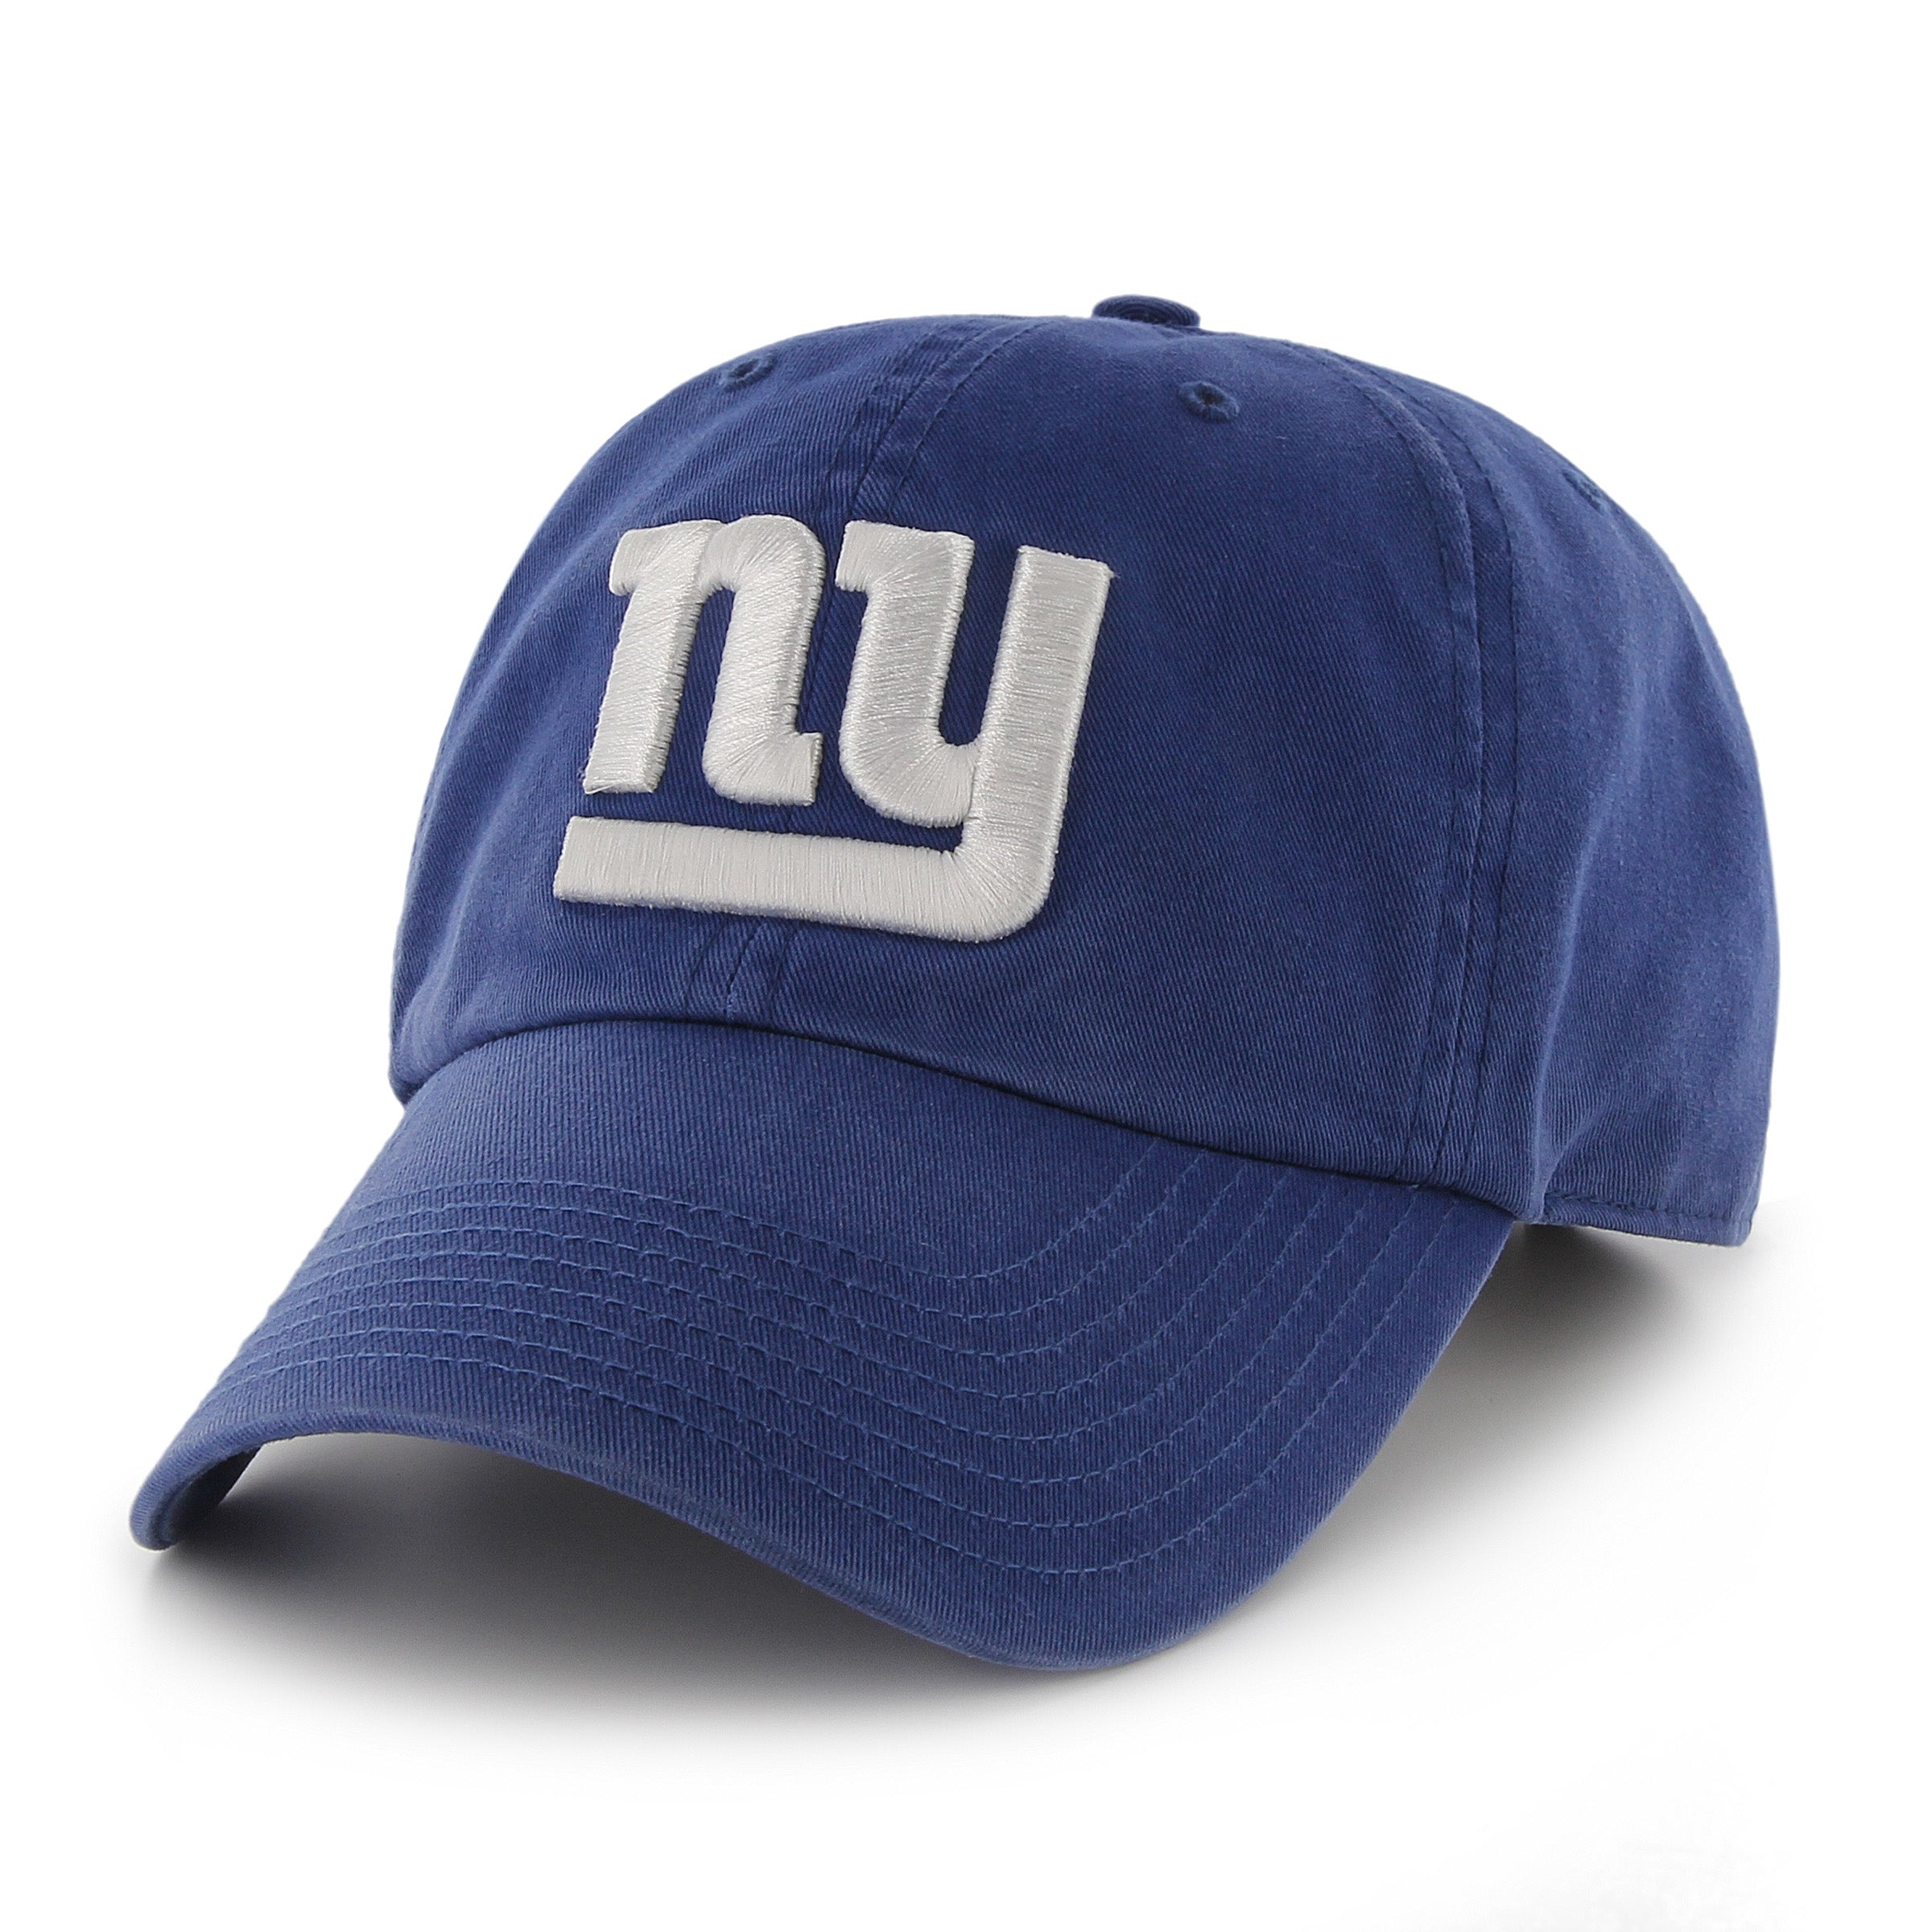 New York Giants (NFL) - Unstructured Baseball Cap